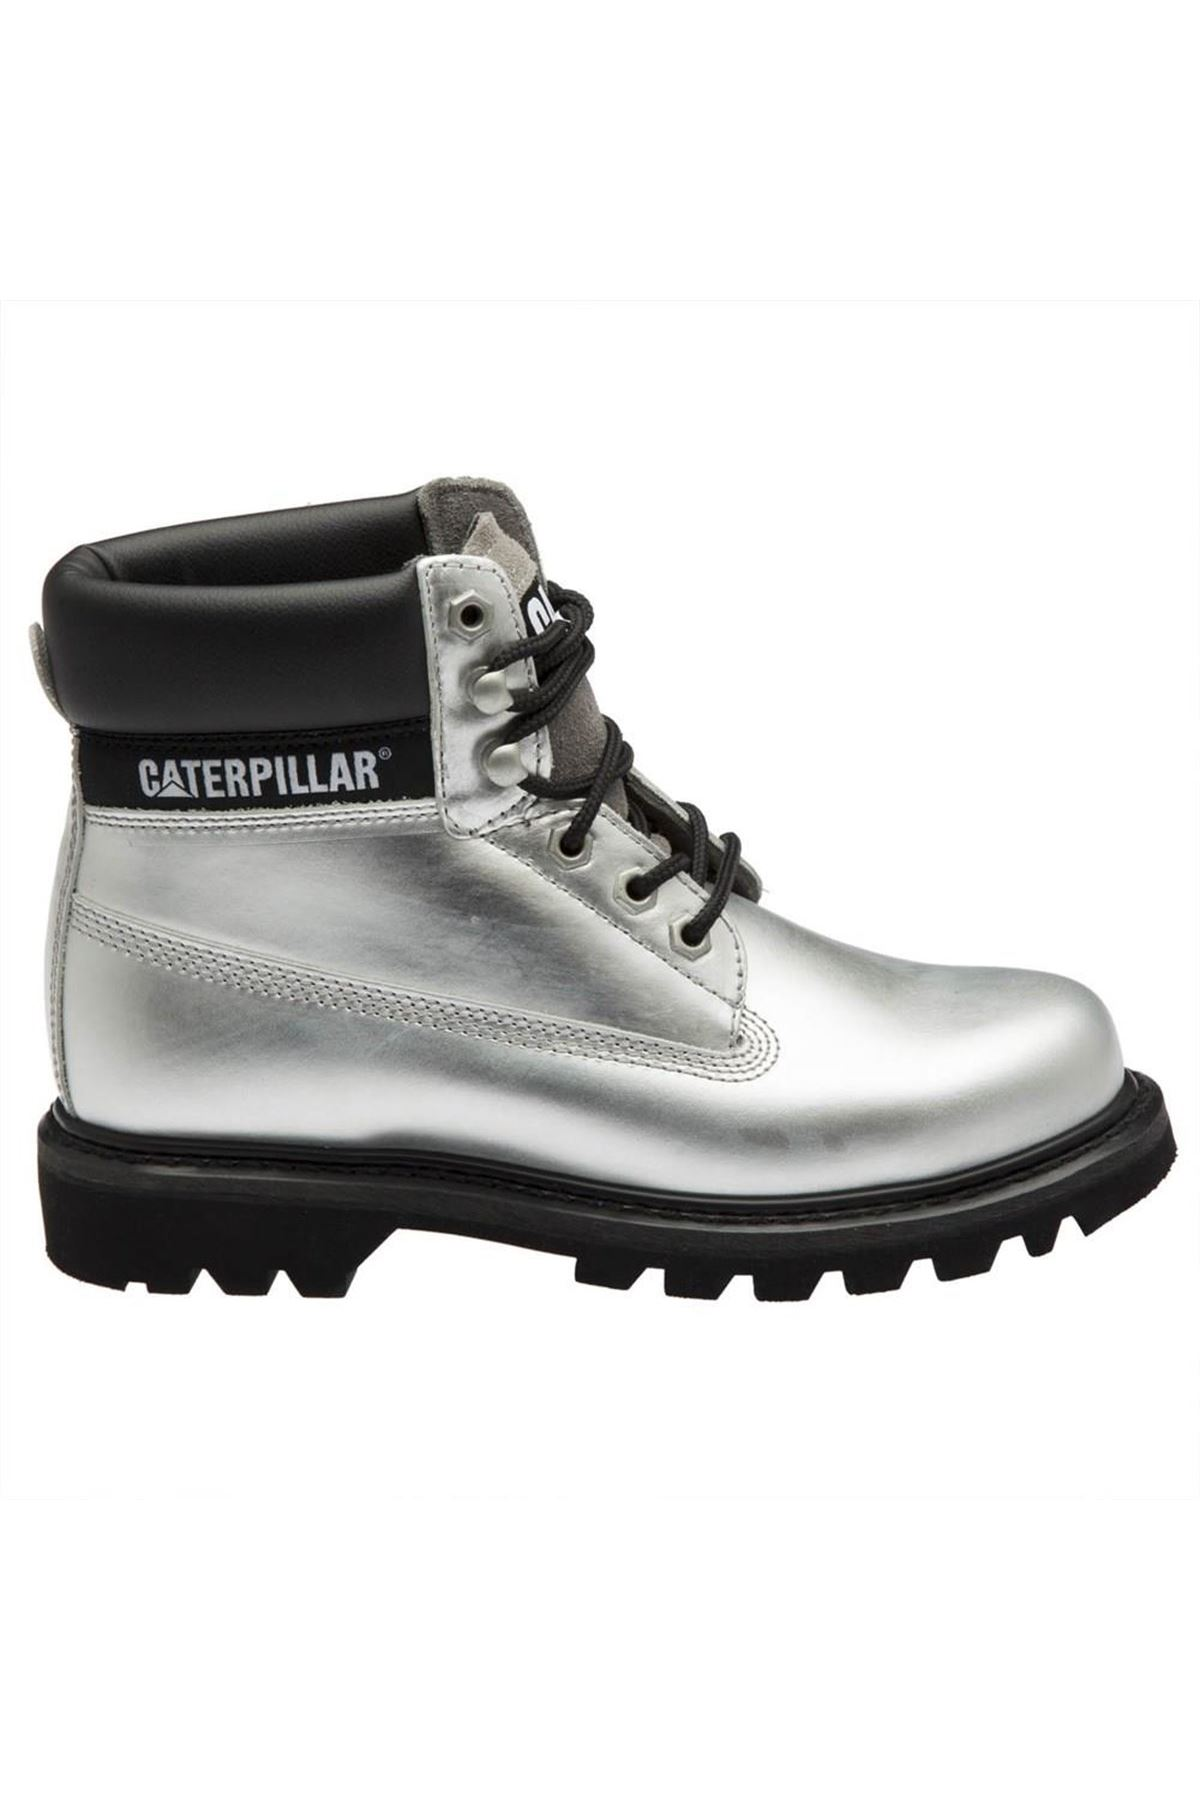 Caterpillar Colorado Silver